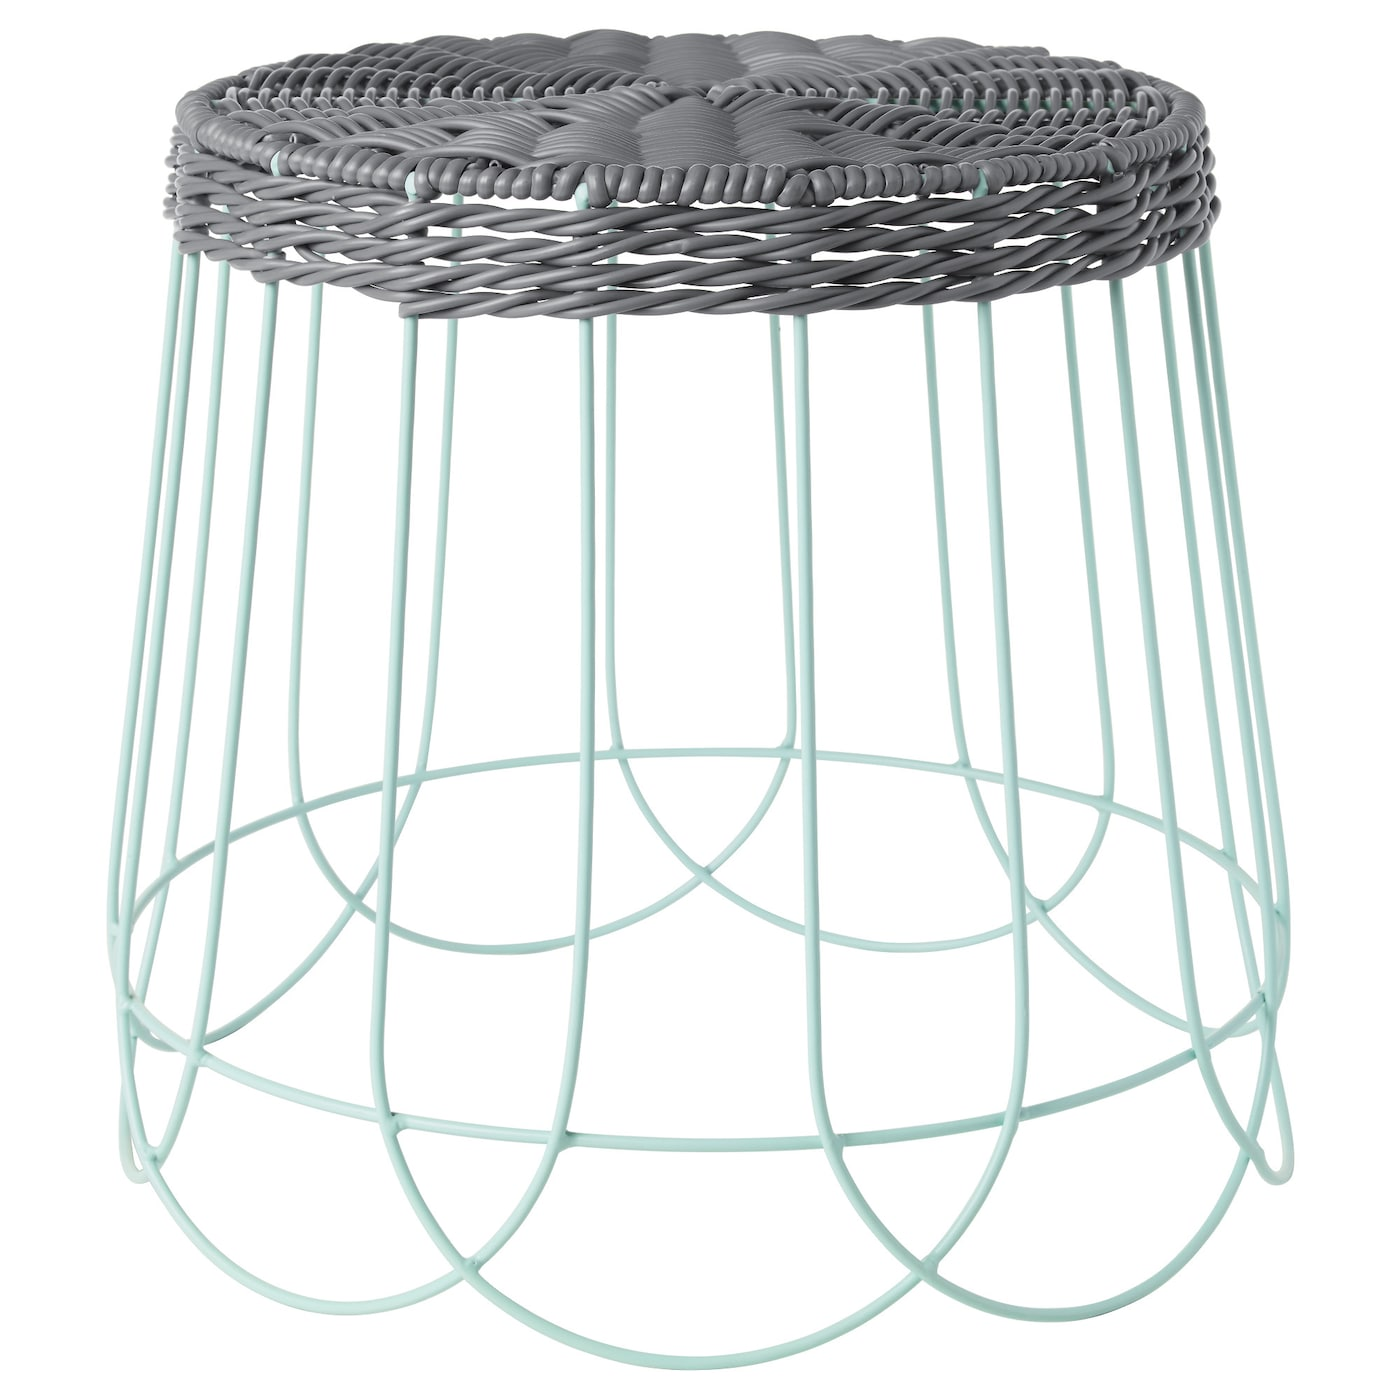 IKEA SOLROSFRÖ plant stand